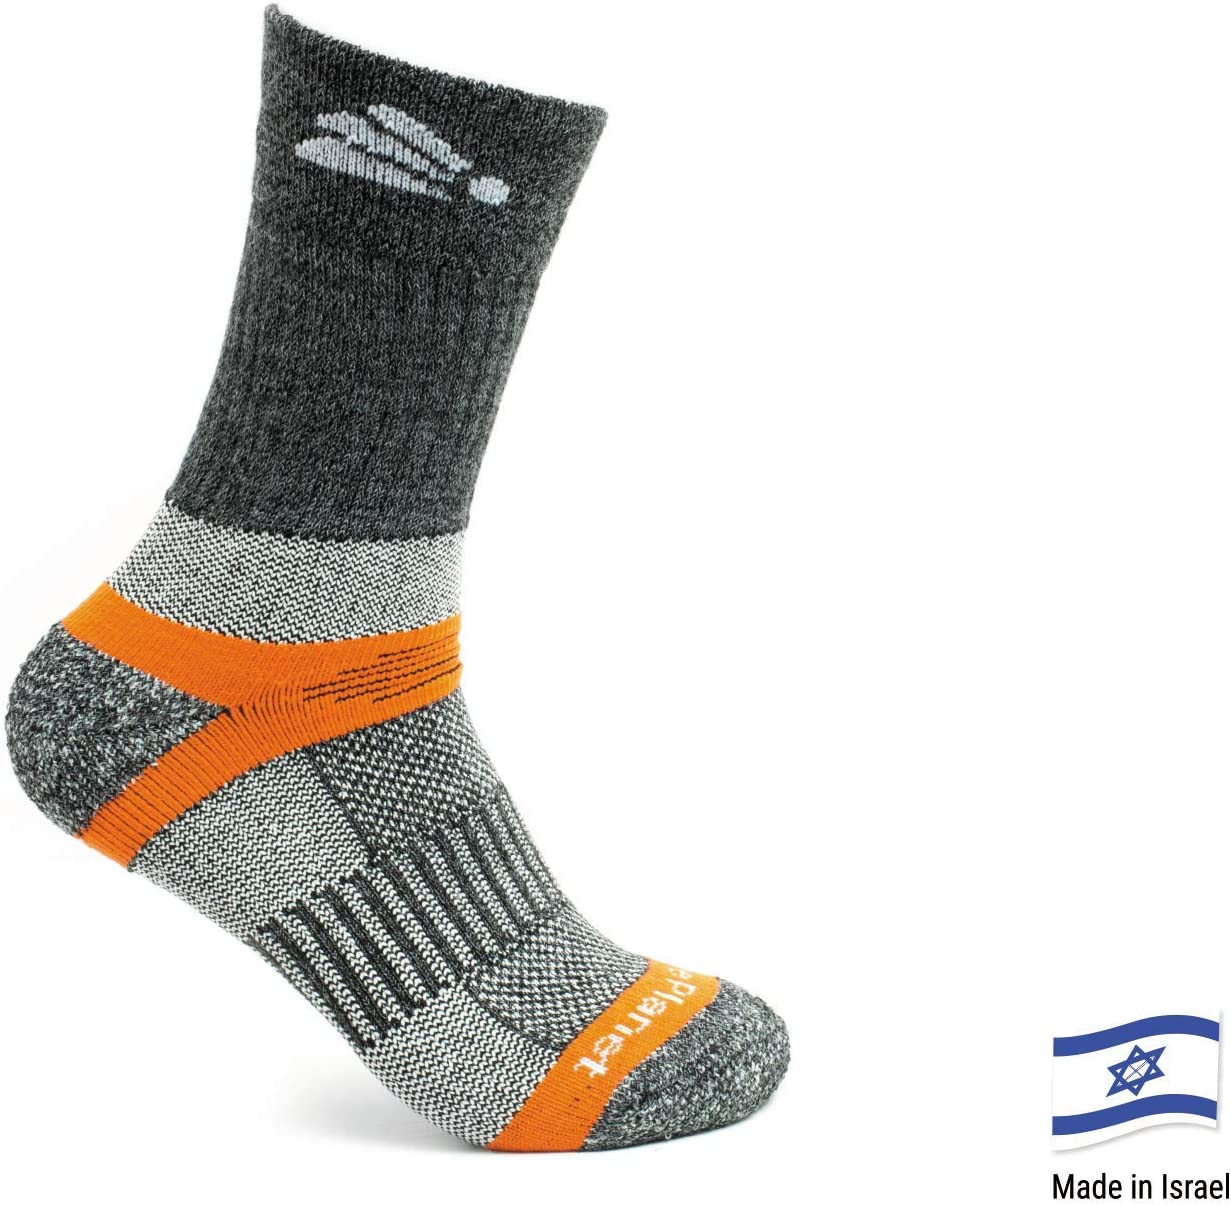 Native Planet INNERGY Outdoors Hiking Socks, Mild - Cold Weather, Far Infrared Rays Technology, Unisex